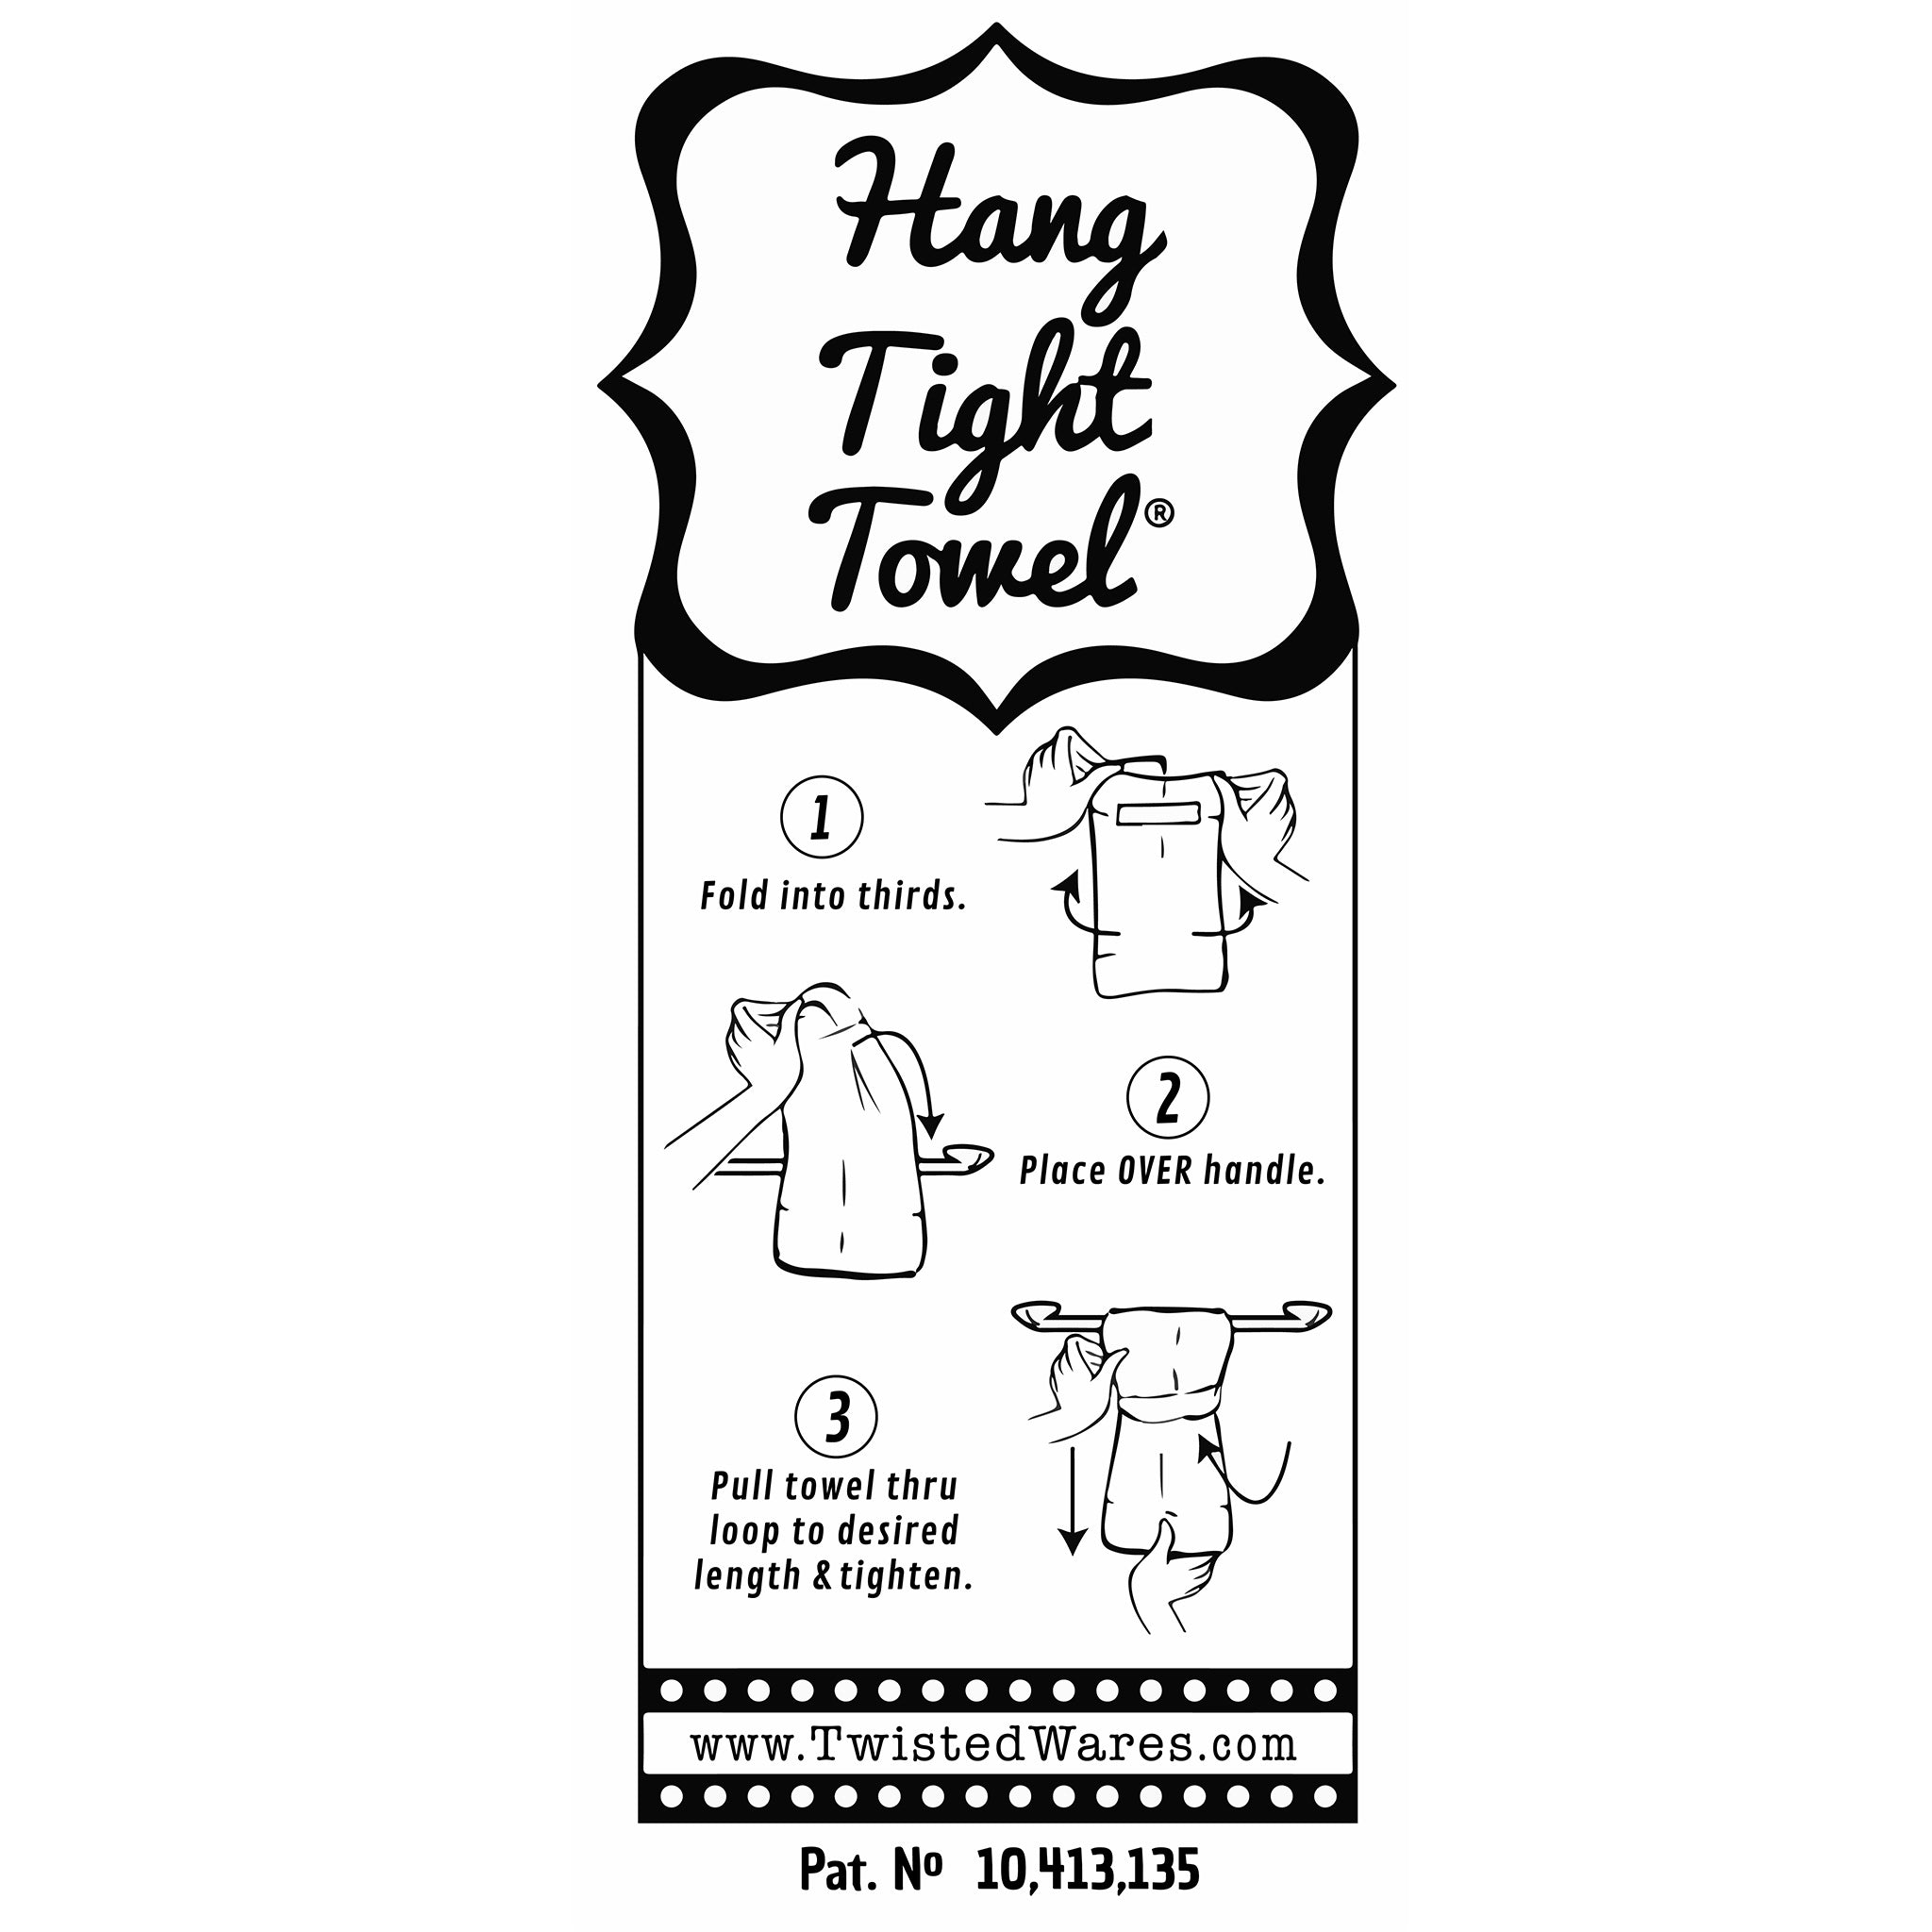 Make Today Your Bitch! Flour Sack Hang Tight Towel®